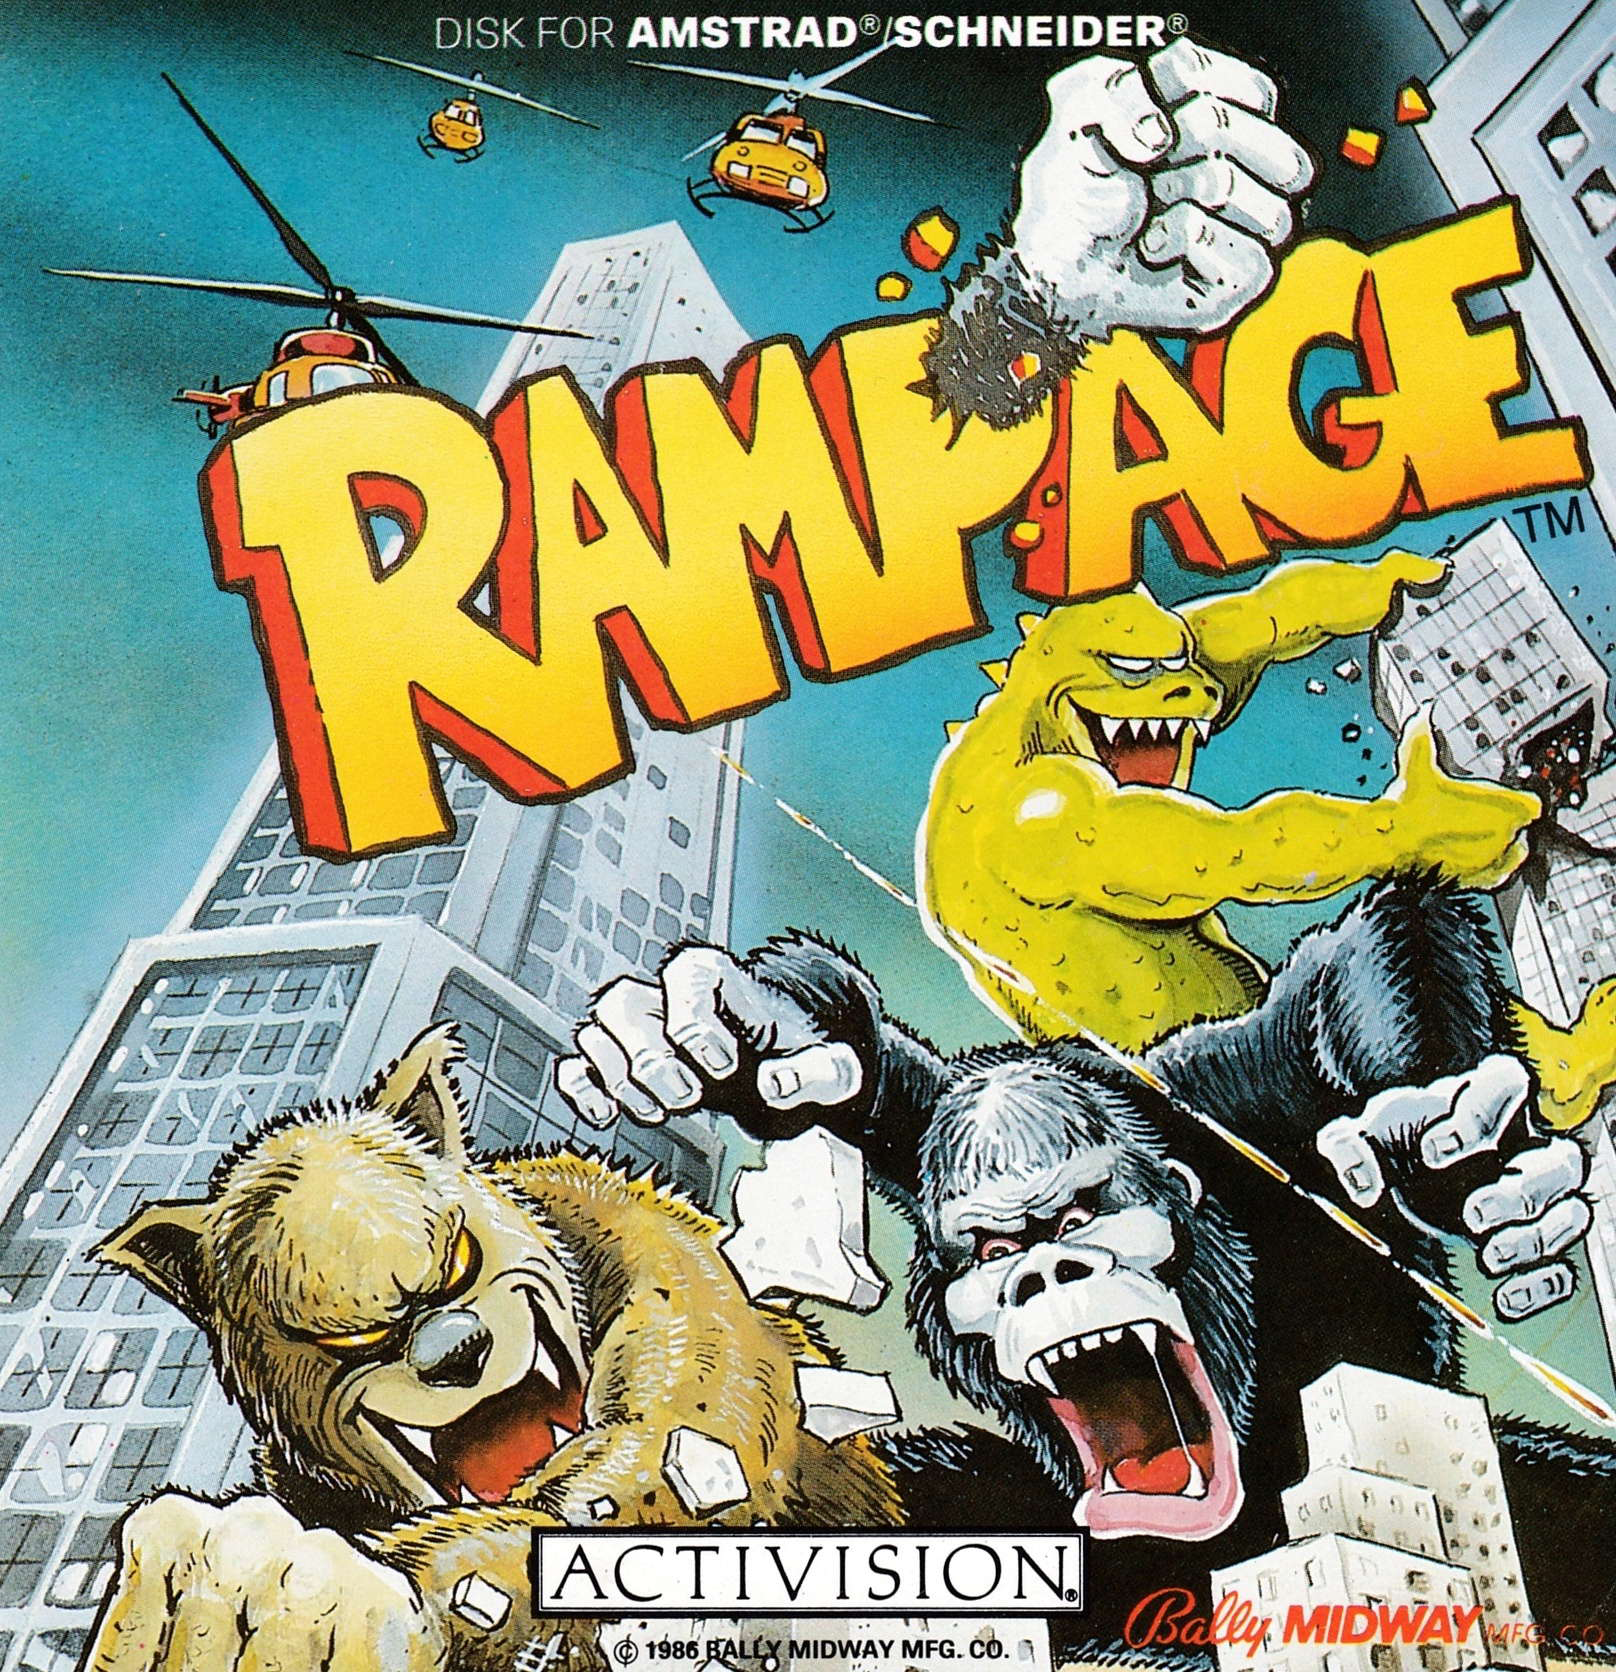 cover of the Amstrad CPC game Rampage  by GameBase CPC